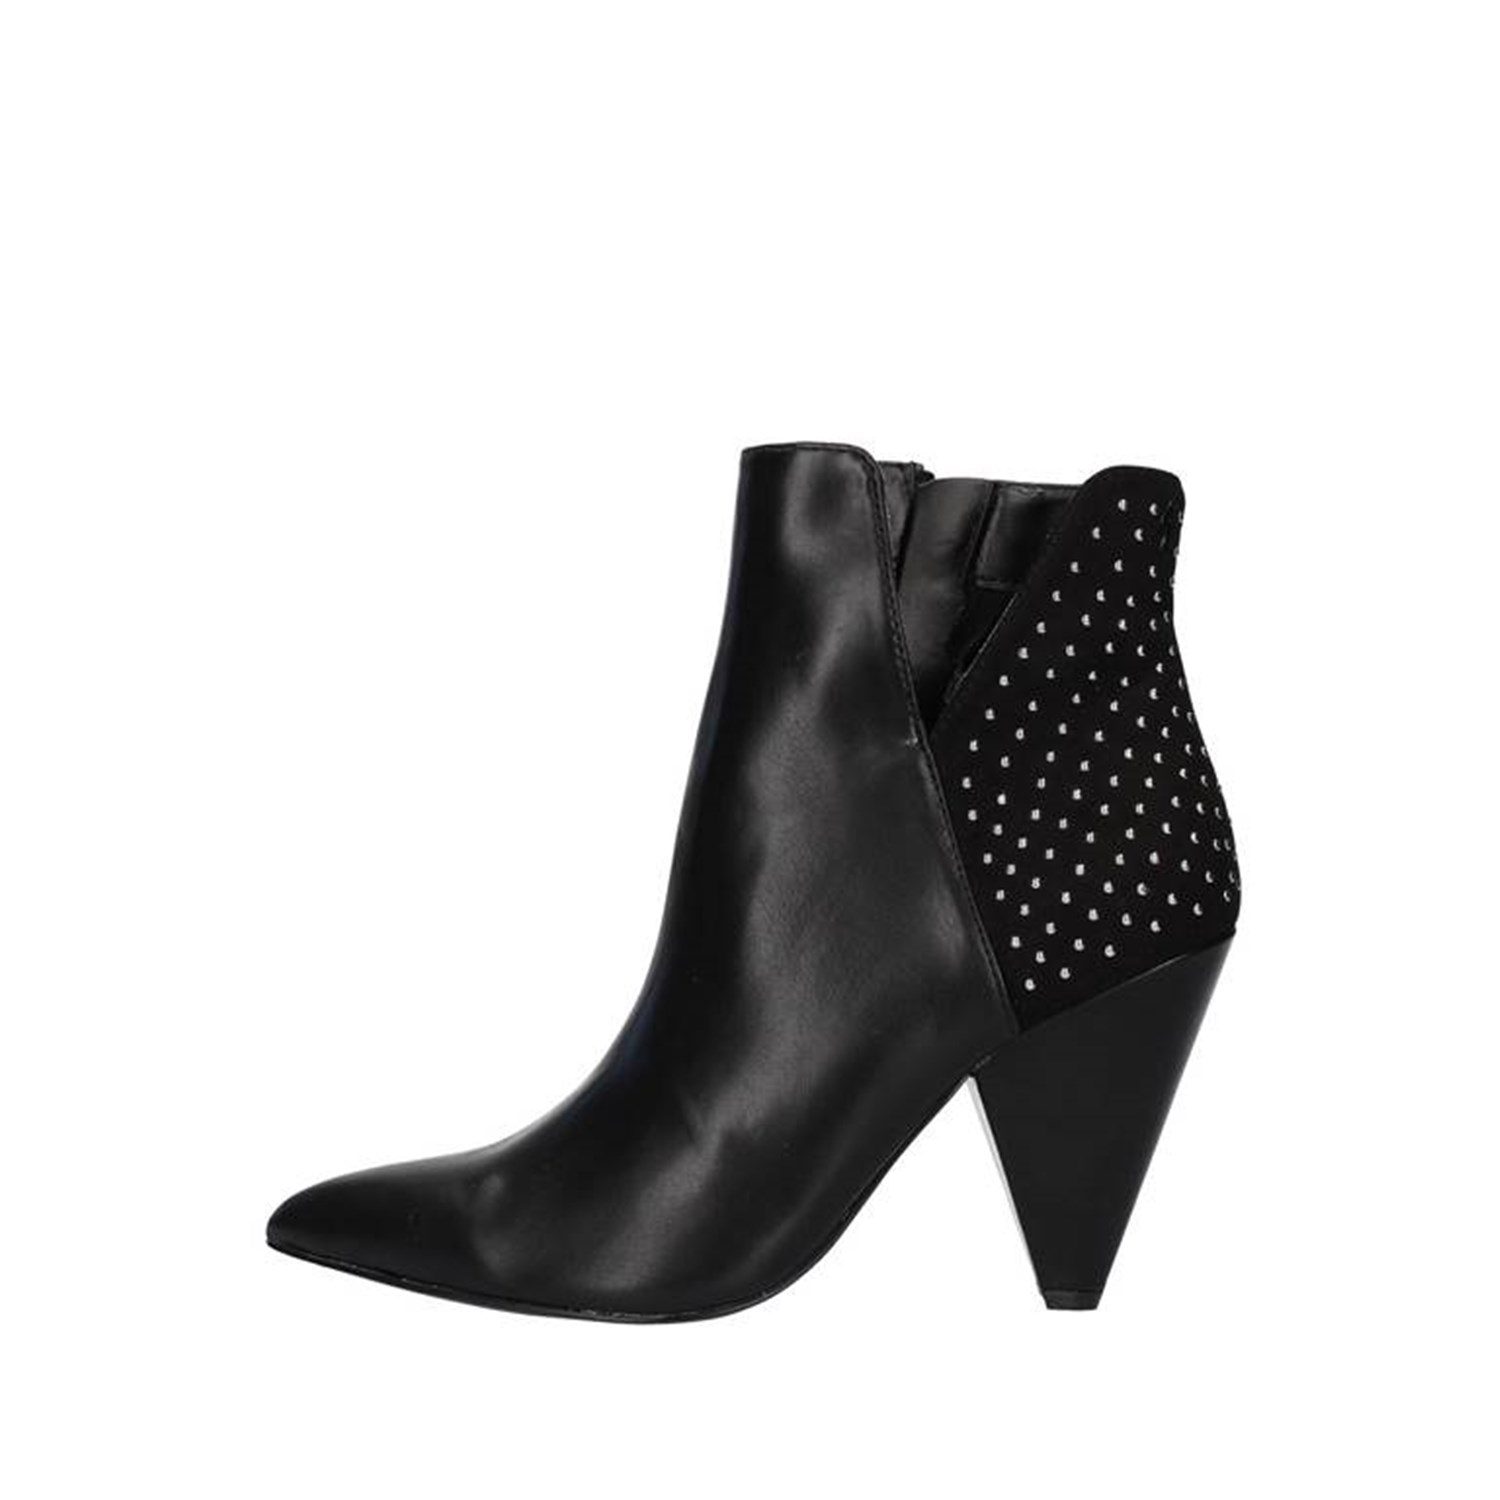 Gattinoni Roma Shoes Woman boots BLACK 0787WCA